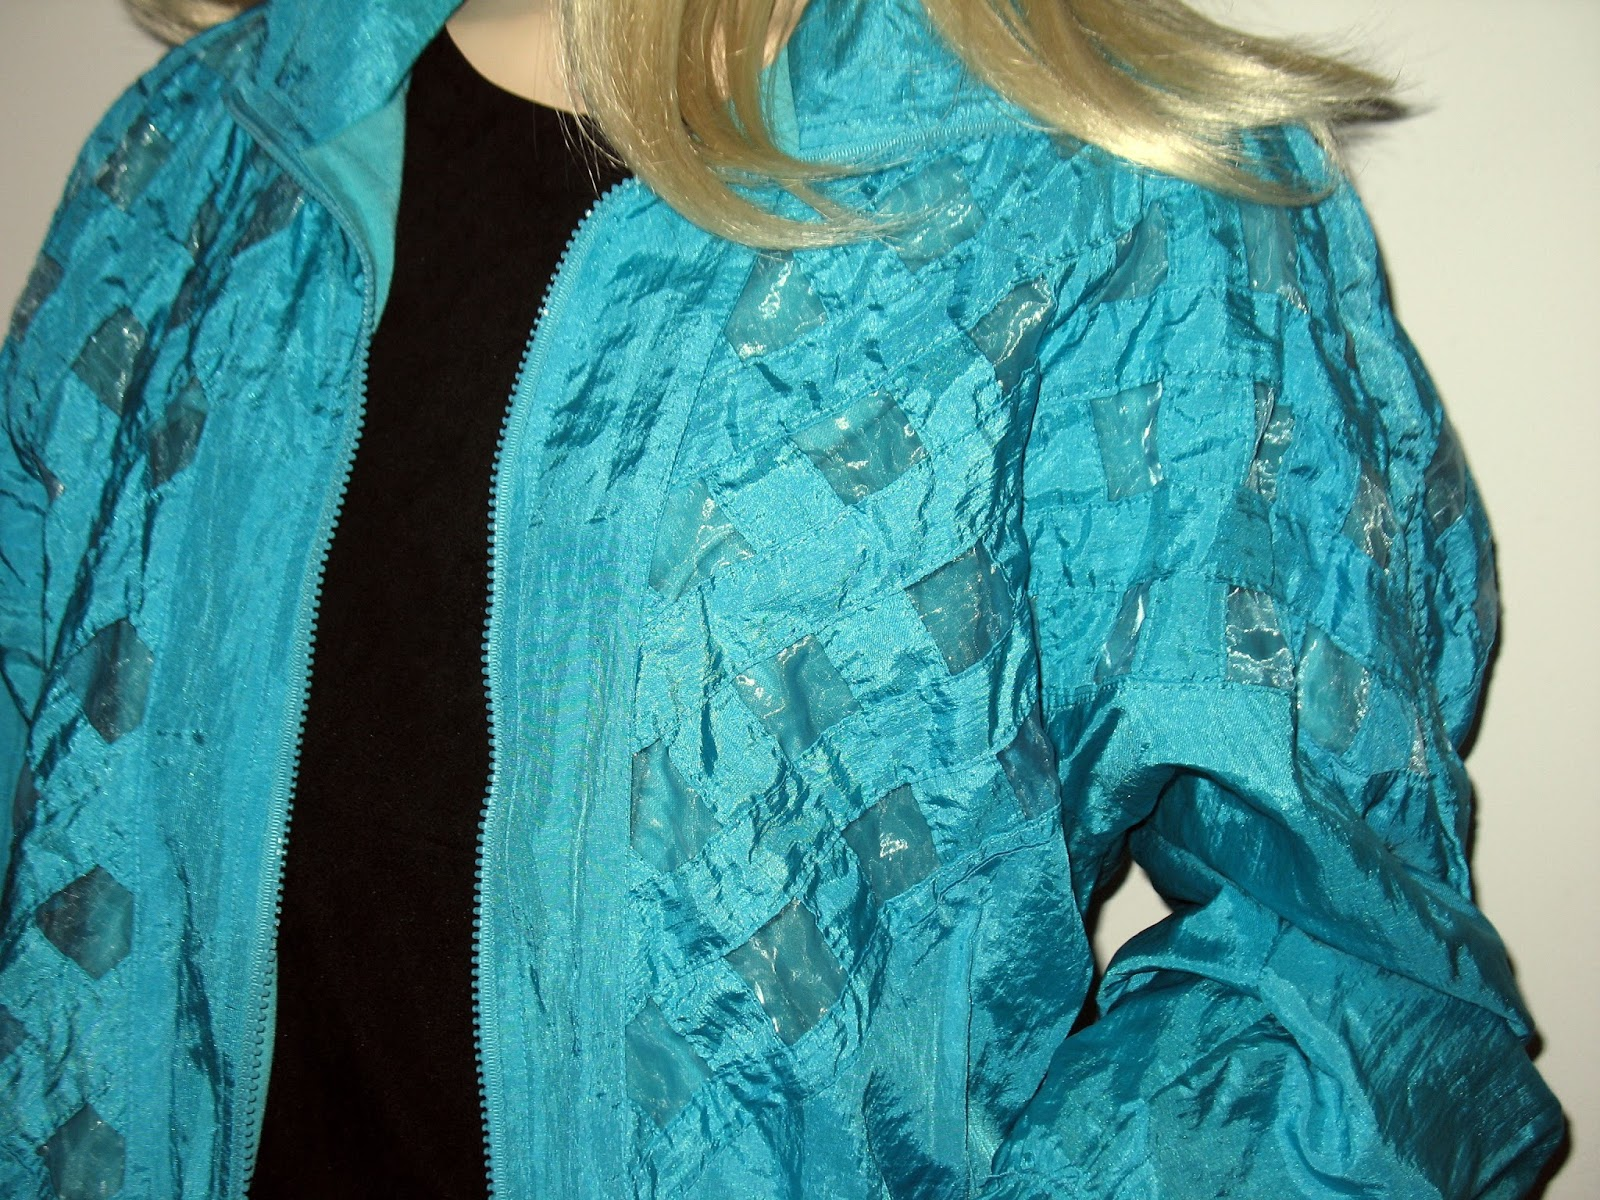 1980s punk new wave jacket turquoise blue metallic iridescent